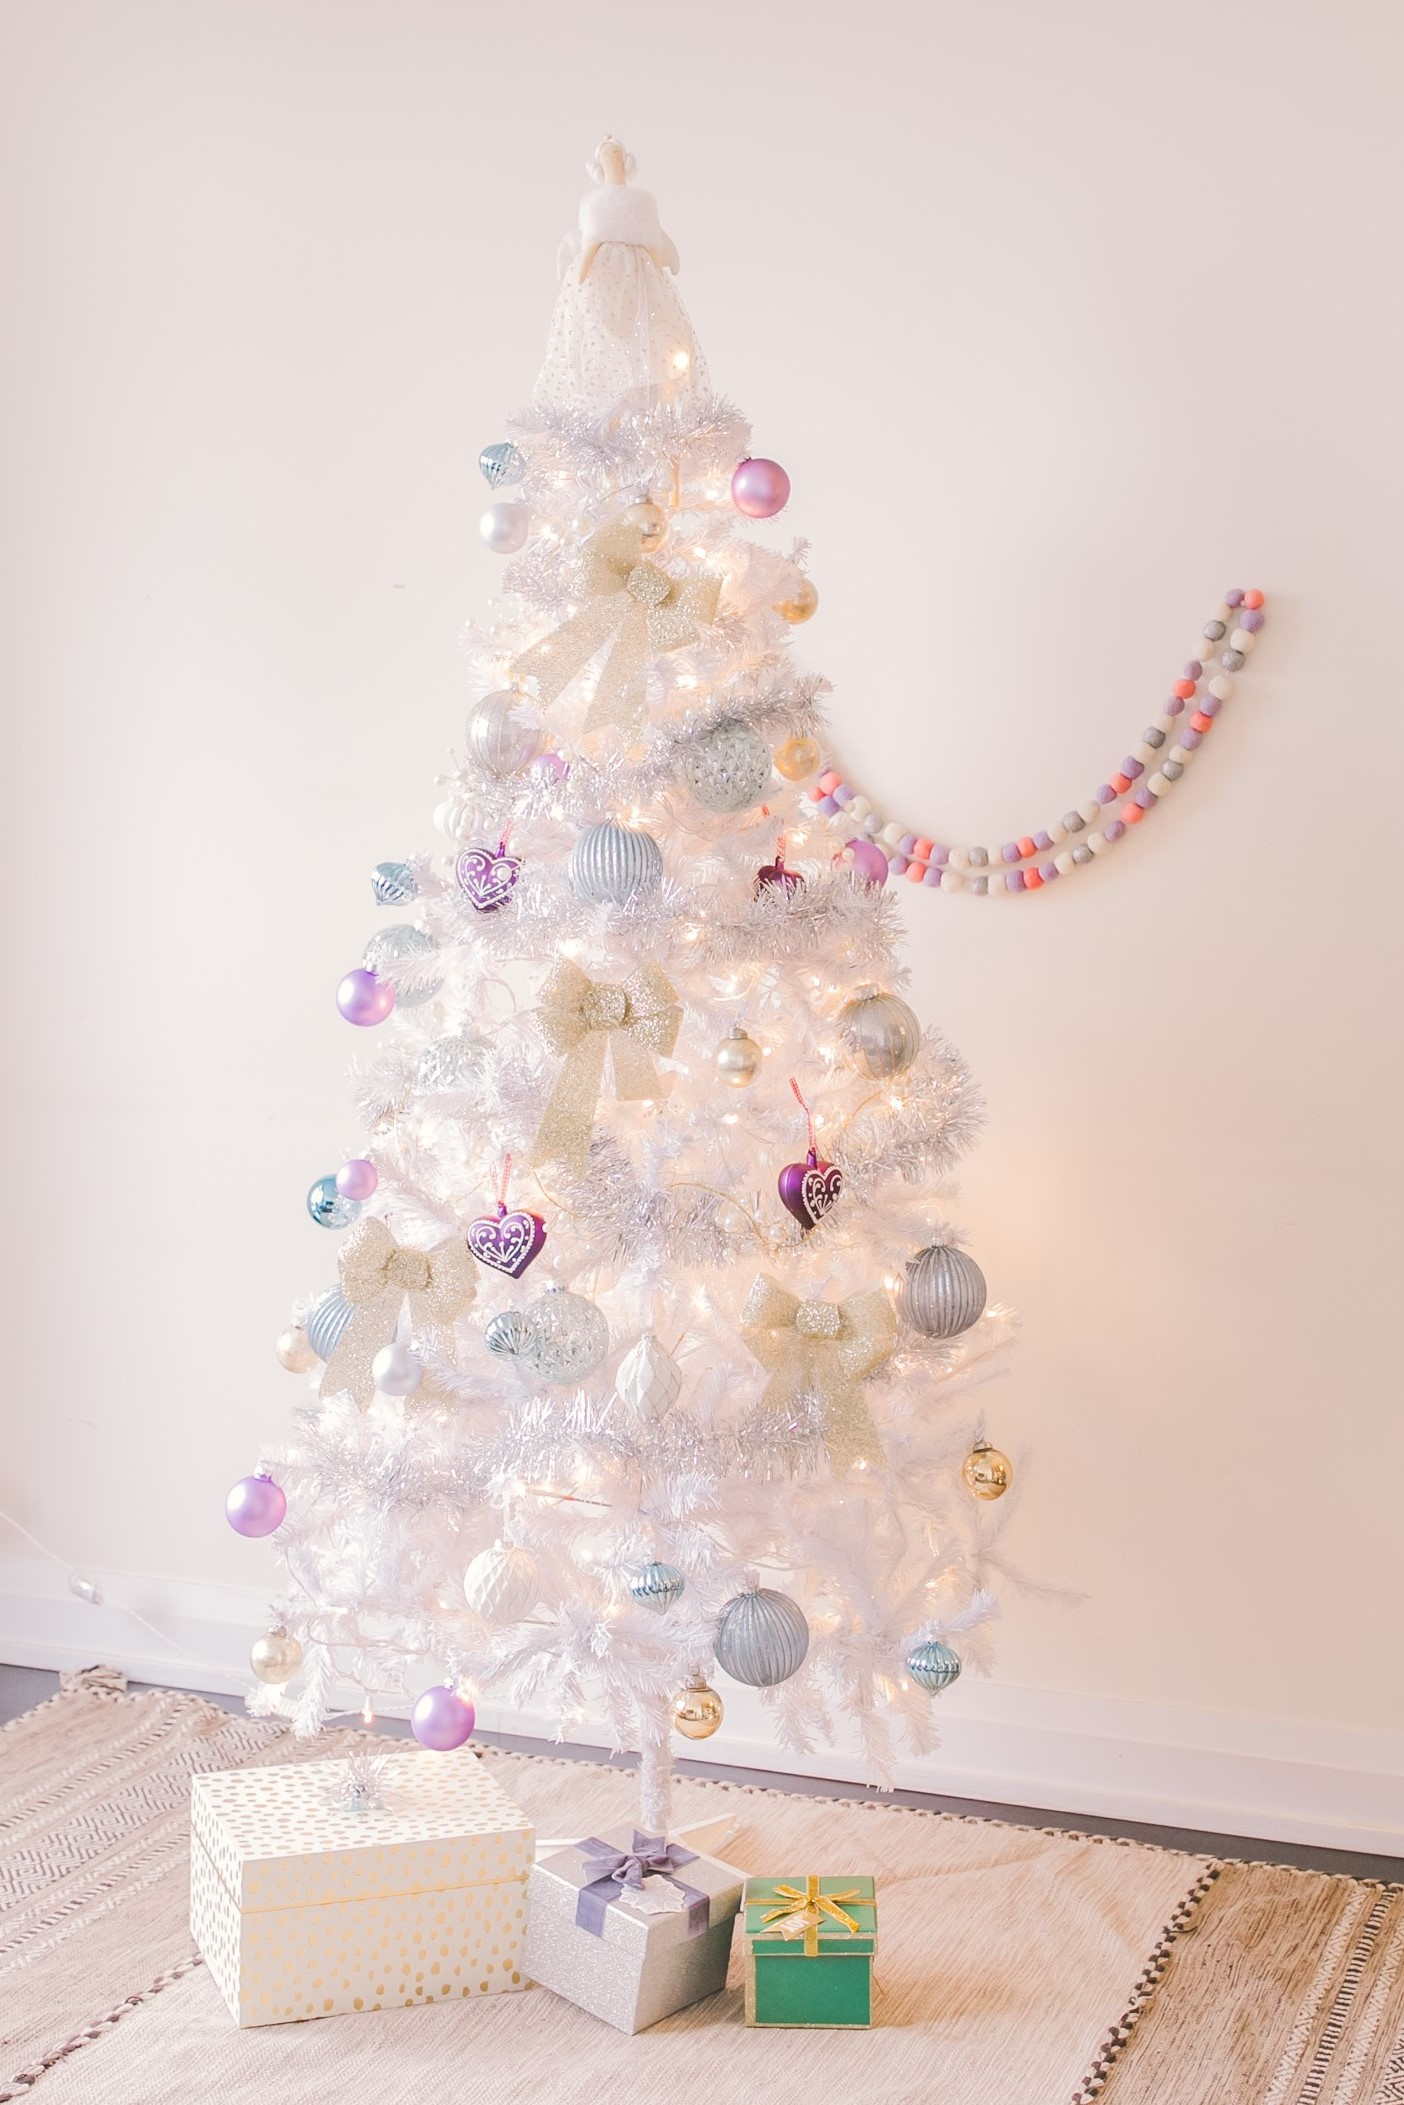 White Christmas Tree Inspiration For Your Home This Holiday Season